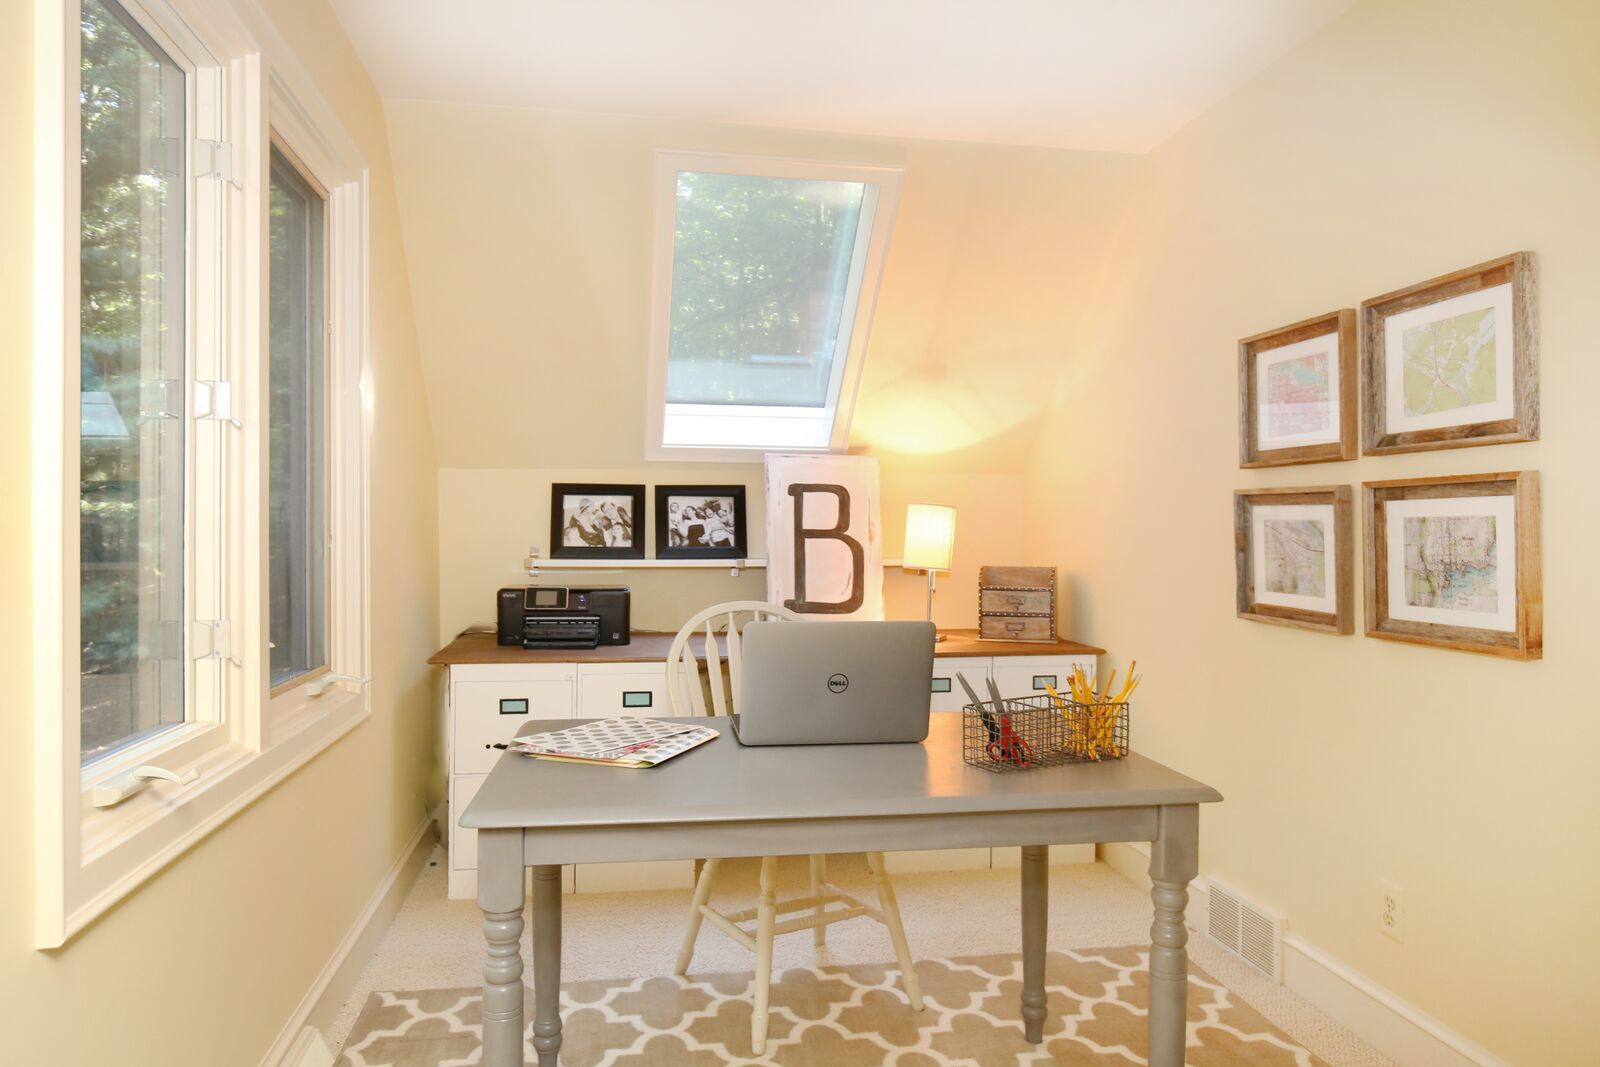 Beau Small Home Office Makeover With File Cabinet Desk (4)